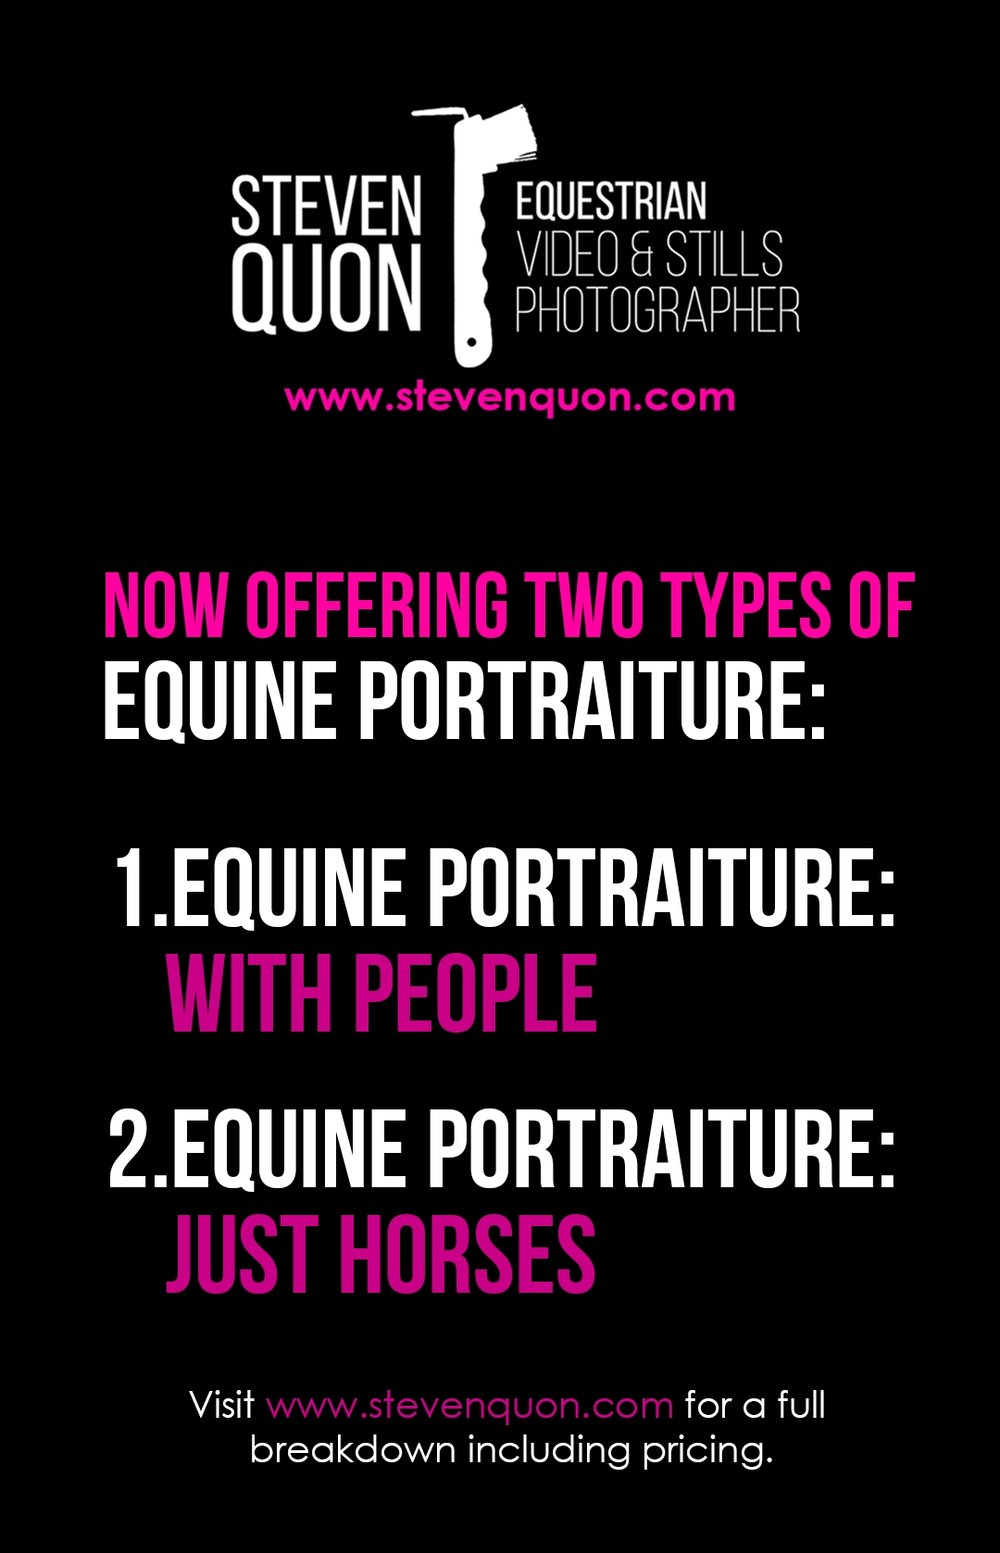 Two types of Equine Portraiture.jpg